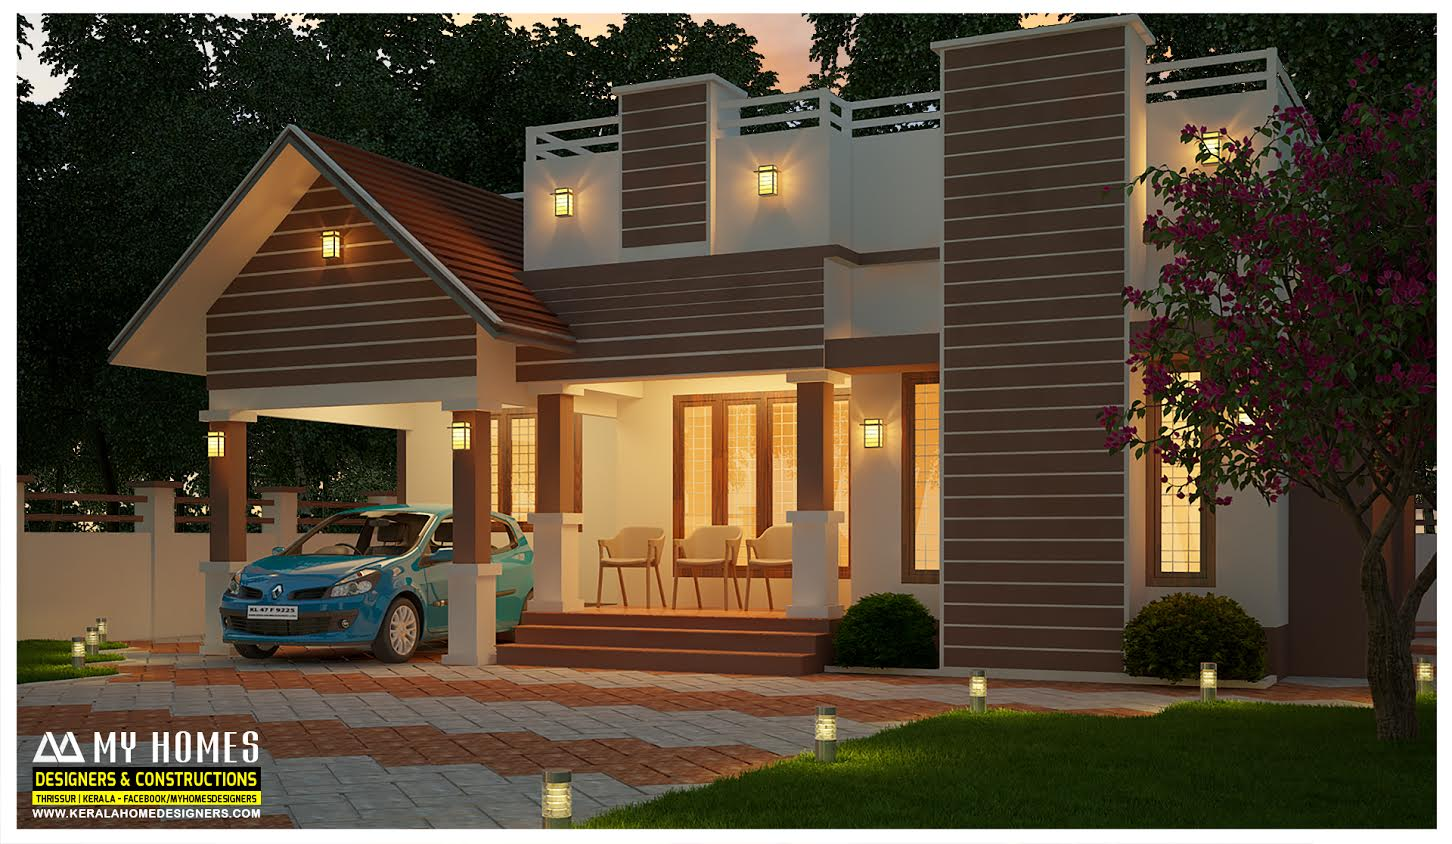 my home designs - Get Single Storey Low Cost Small Modern House Design Pics